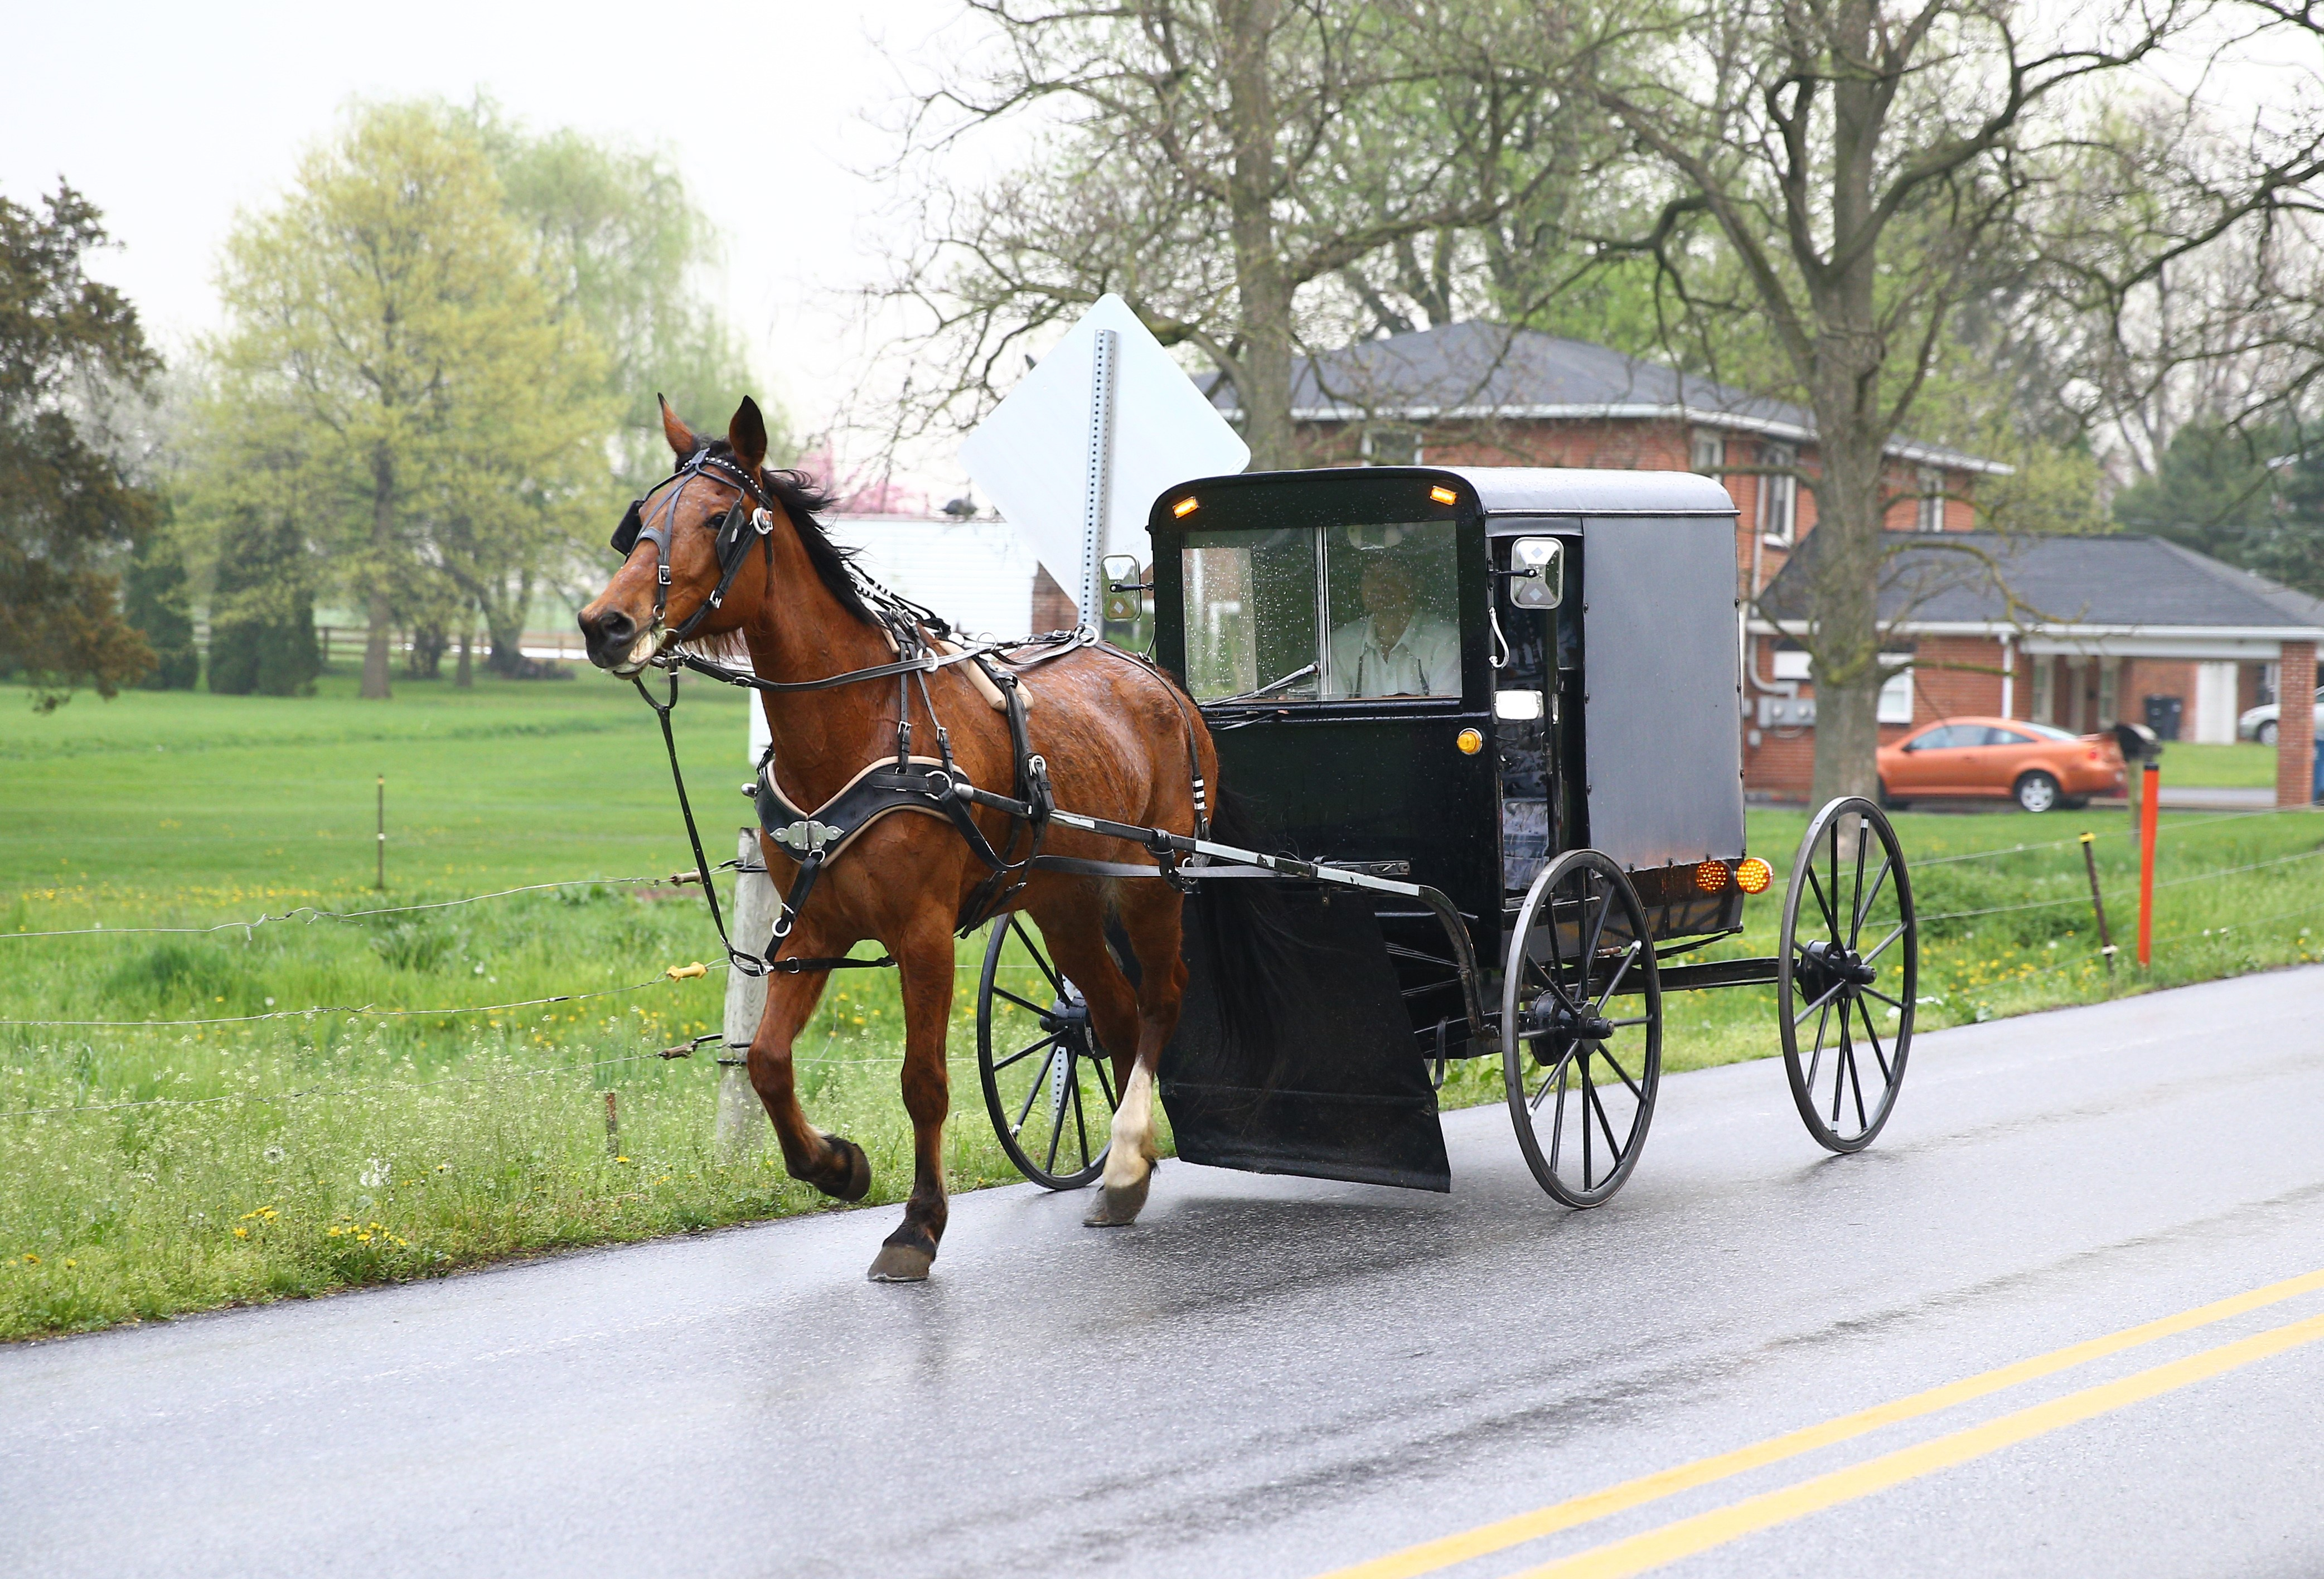 An Amish horse and a buggy are seen on the road in Central Pennsylvania, United States on April 30, 2017.